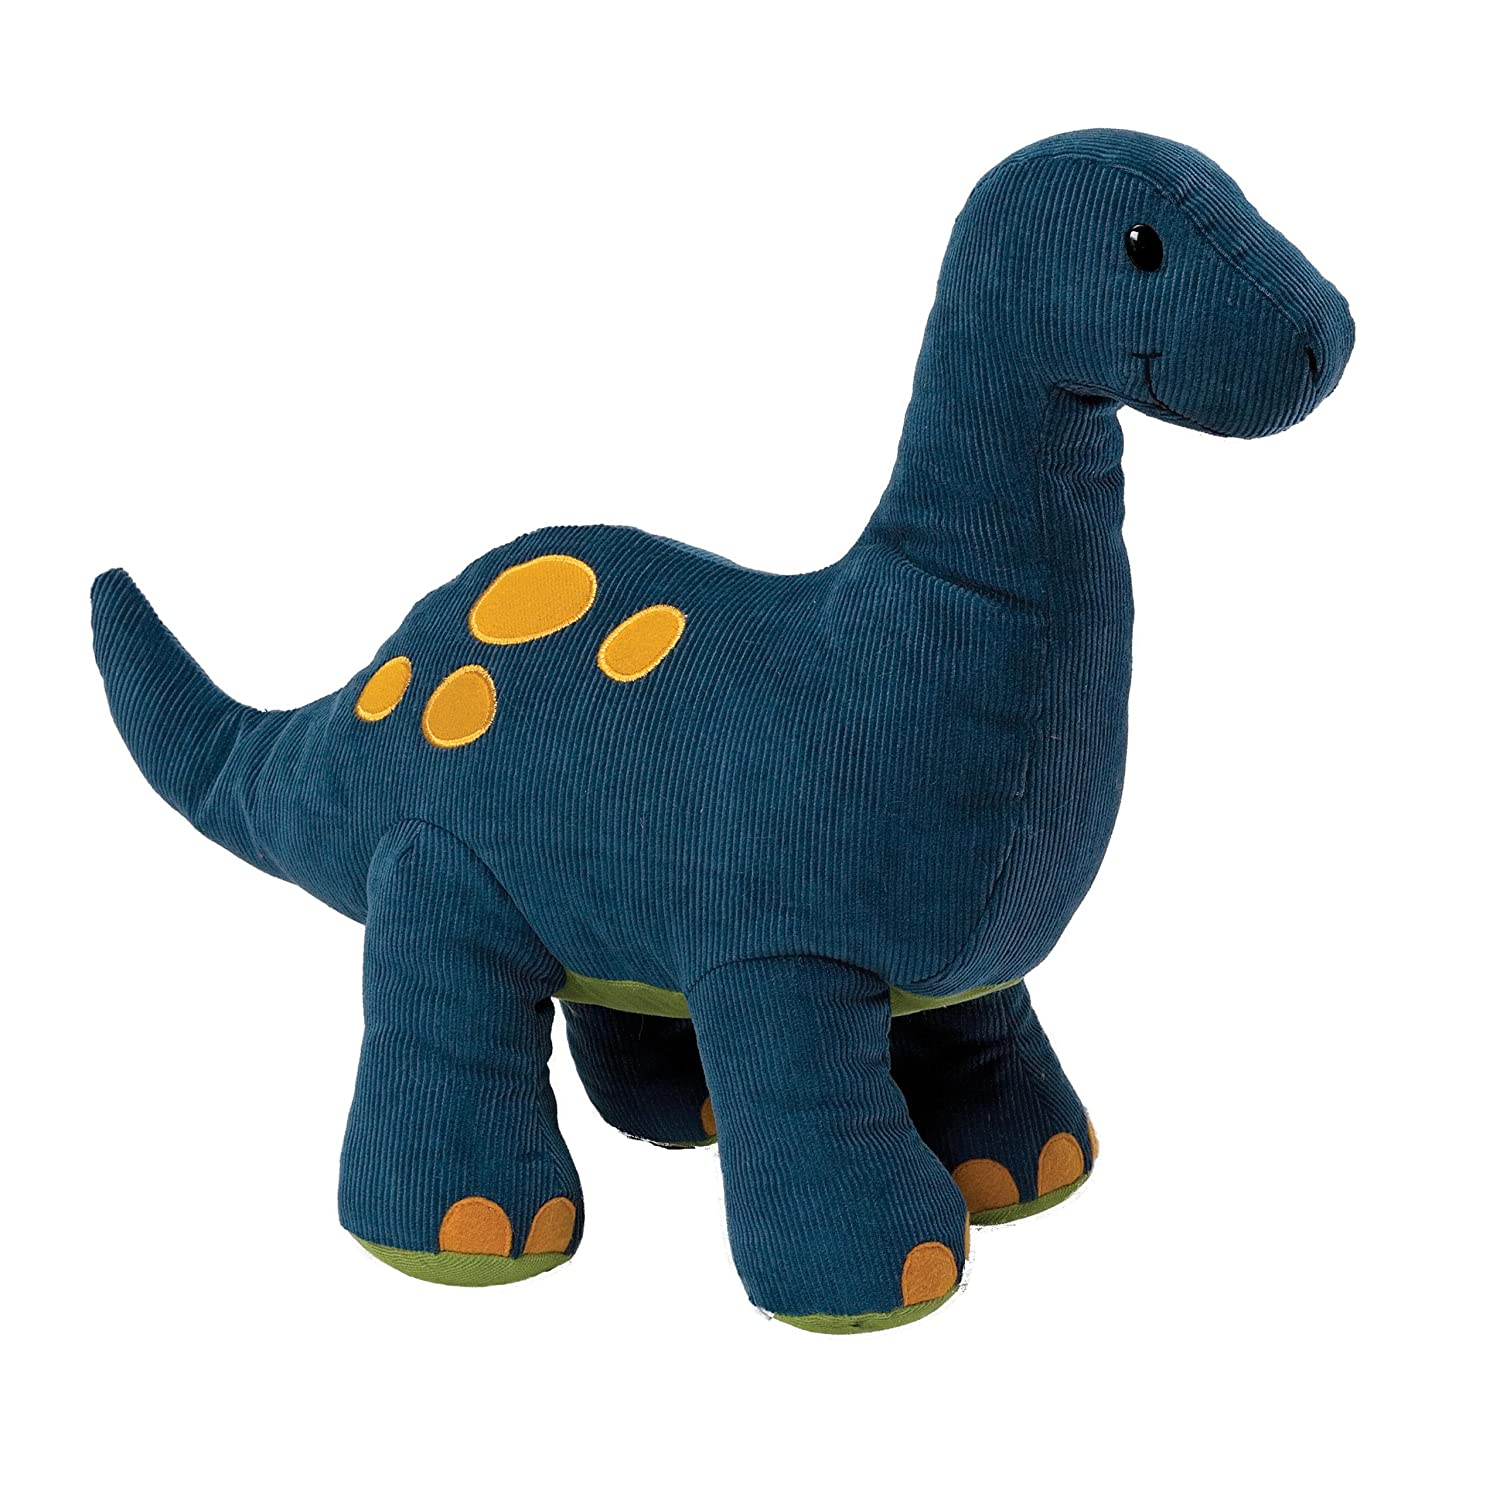 Wilko Animal Pillow : Giant Dinosaur Soft Toy - Best Image Dinosaur 2017